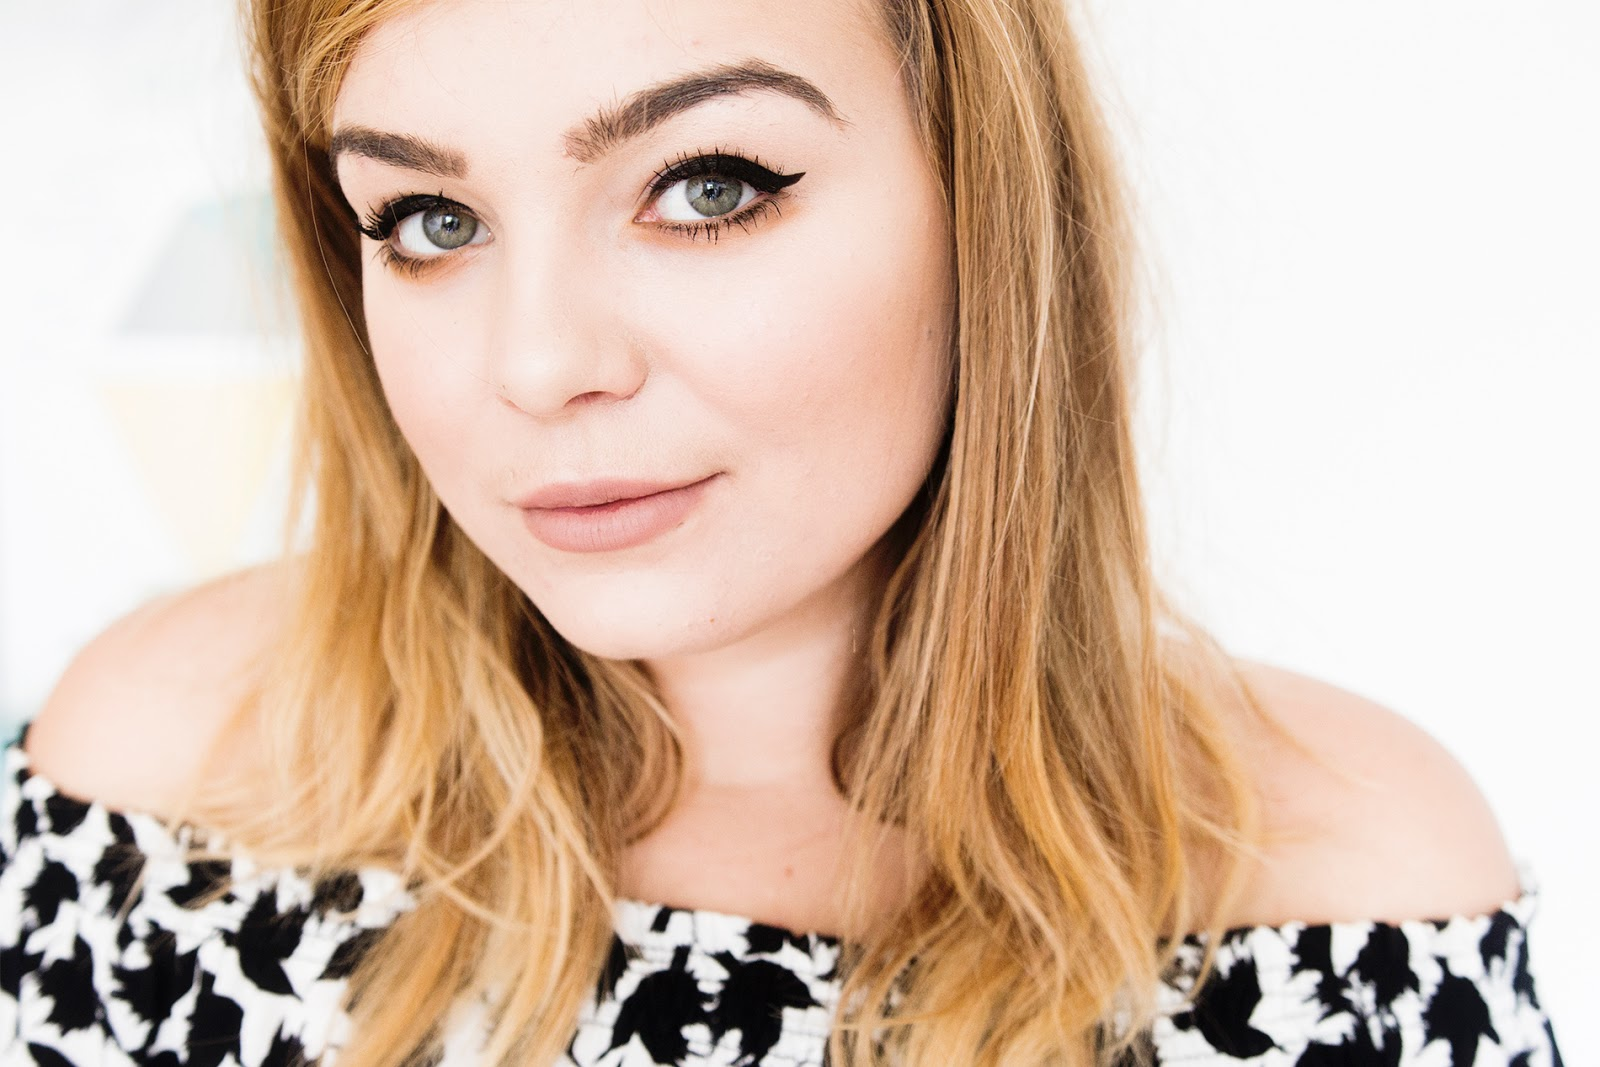 Lily Melrose - UK Style and Fashion Blog: Drugstore Foundation Routine